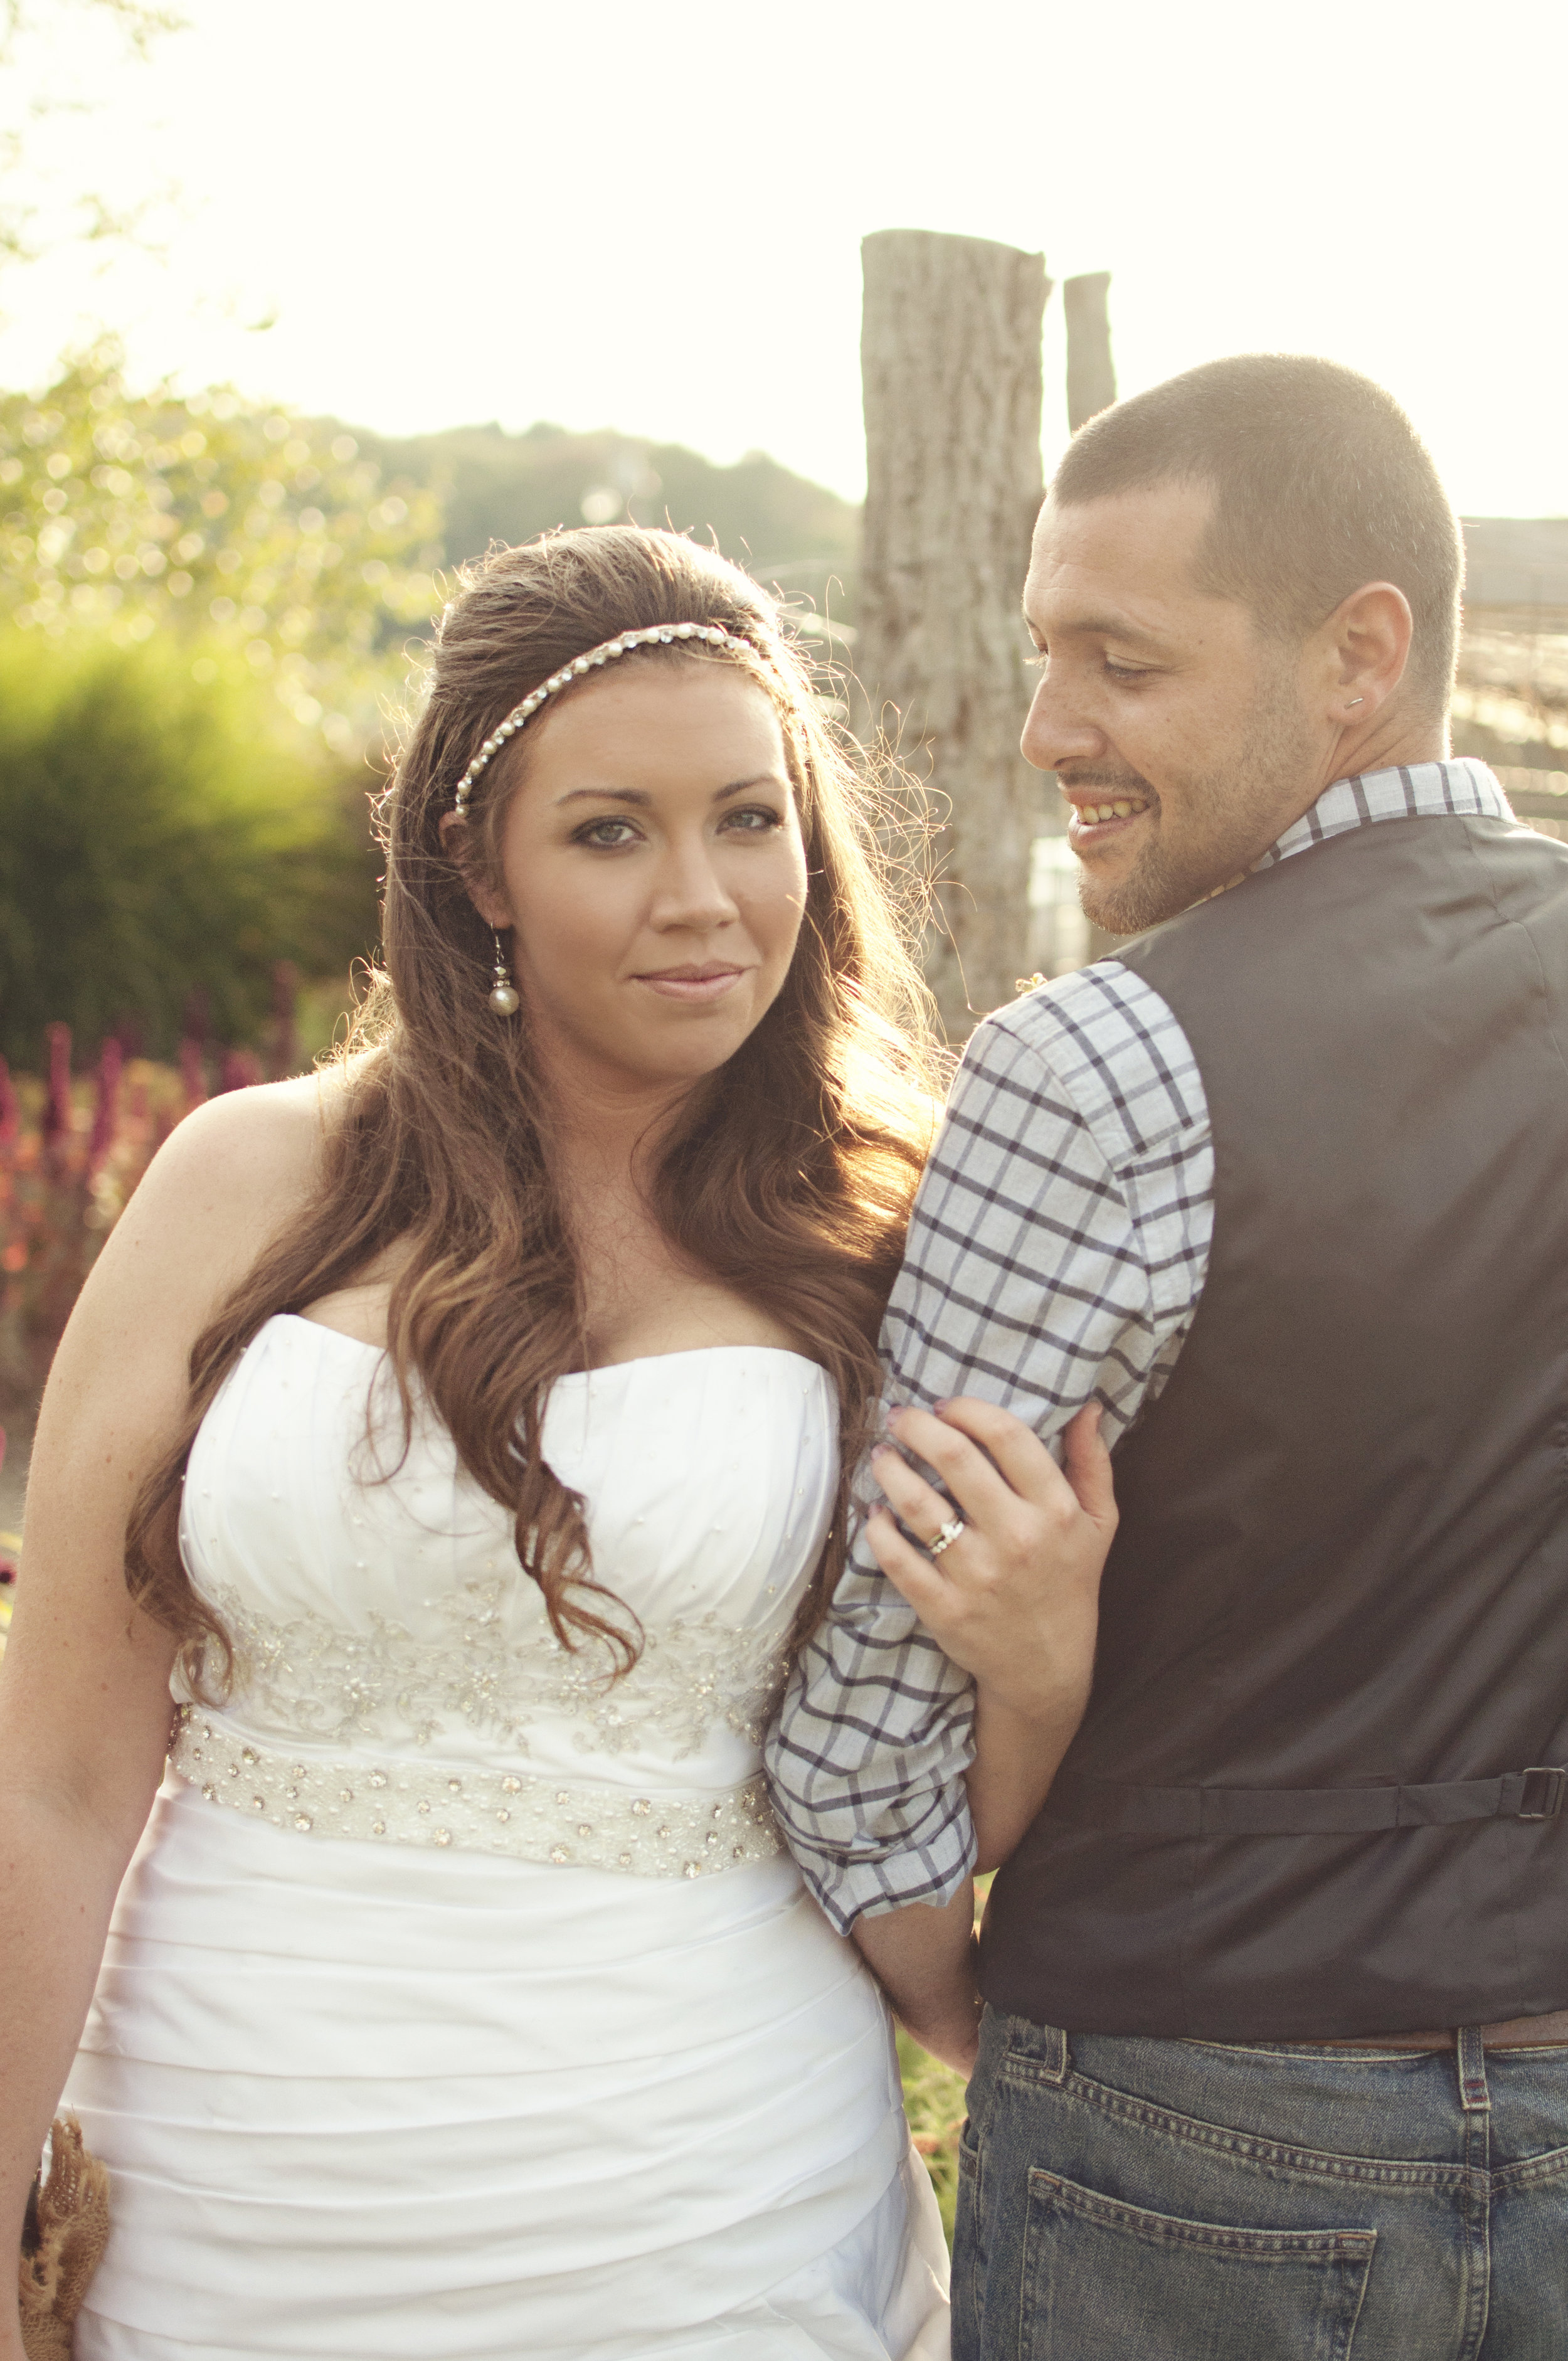 Bride with beaded headband standing with groom looking over shoulder